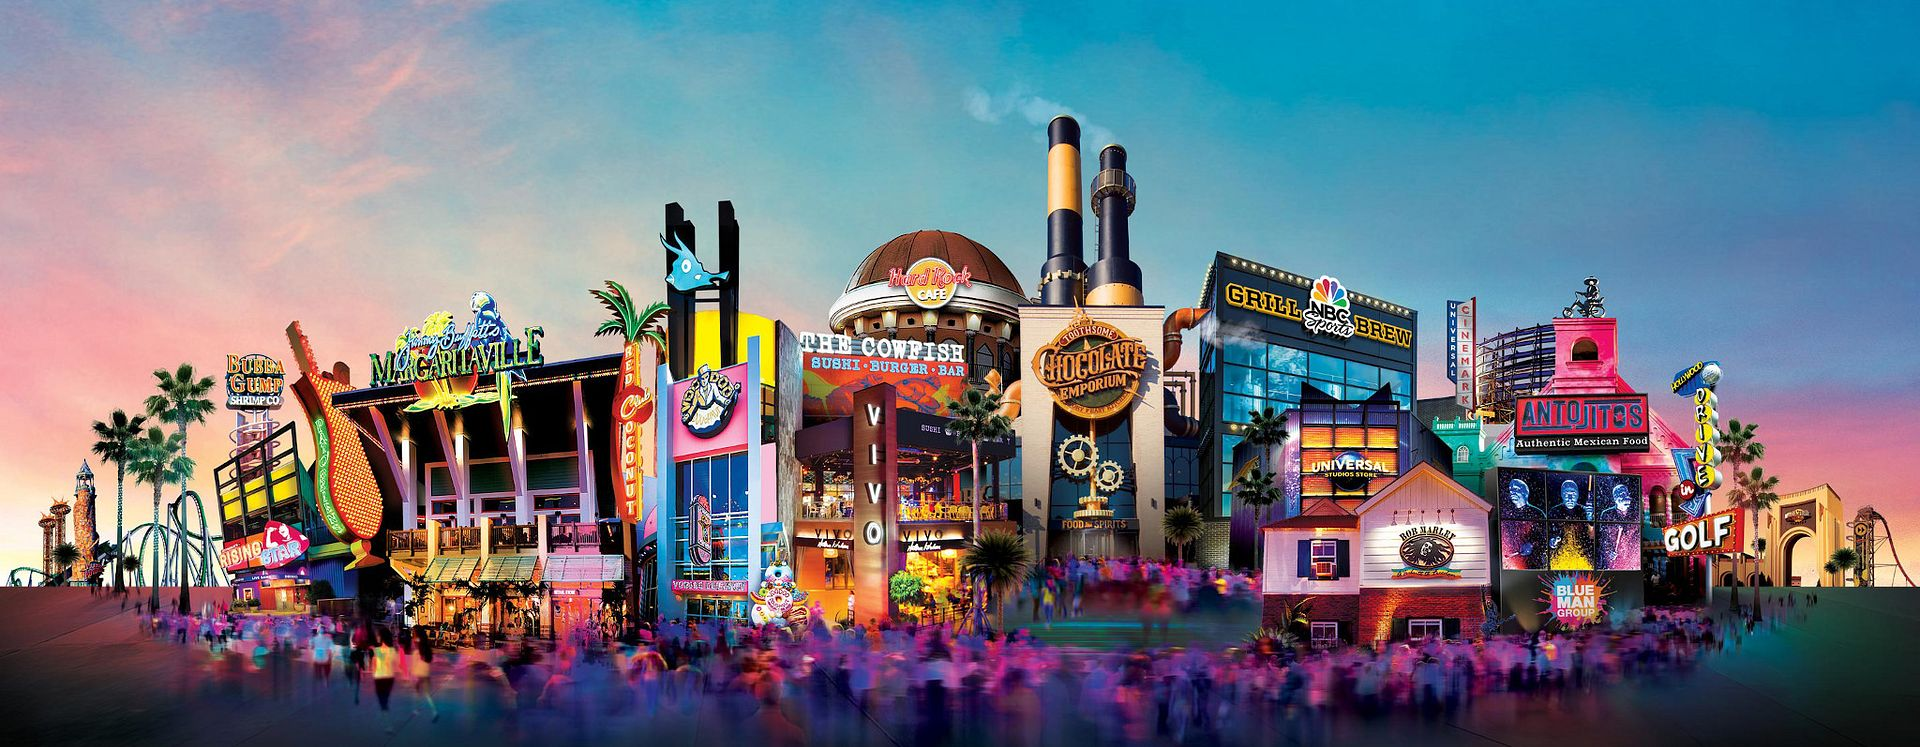 Citywalk at Universal Orlando® Resort provides a multitude of entertainment and restaurants for friends and family.